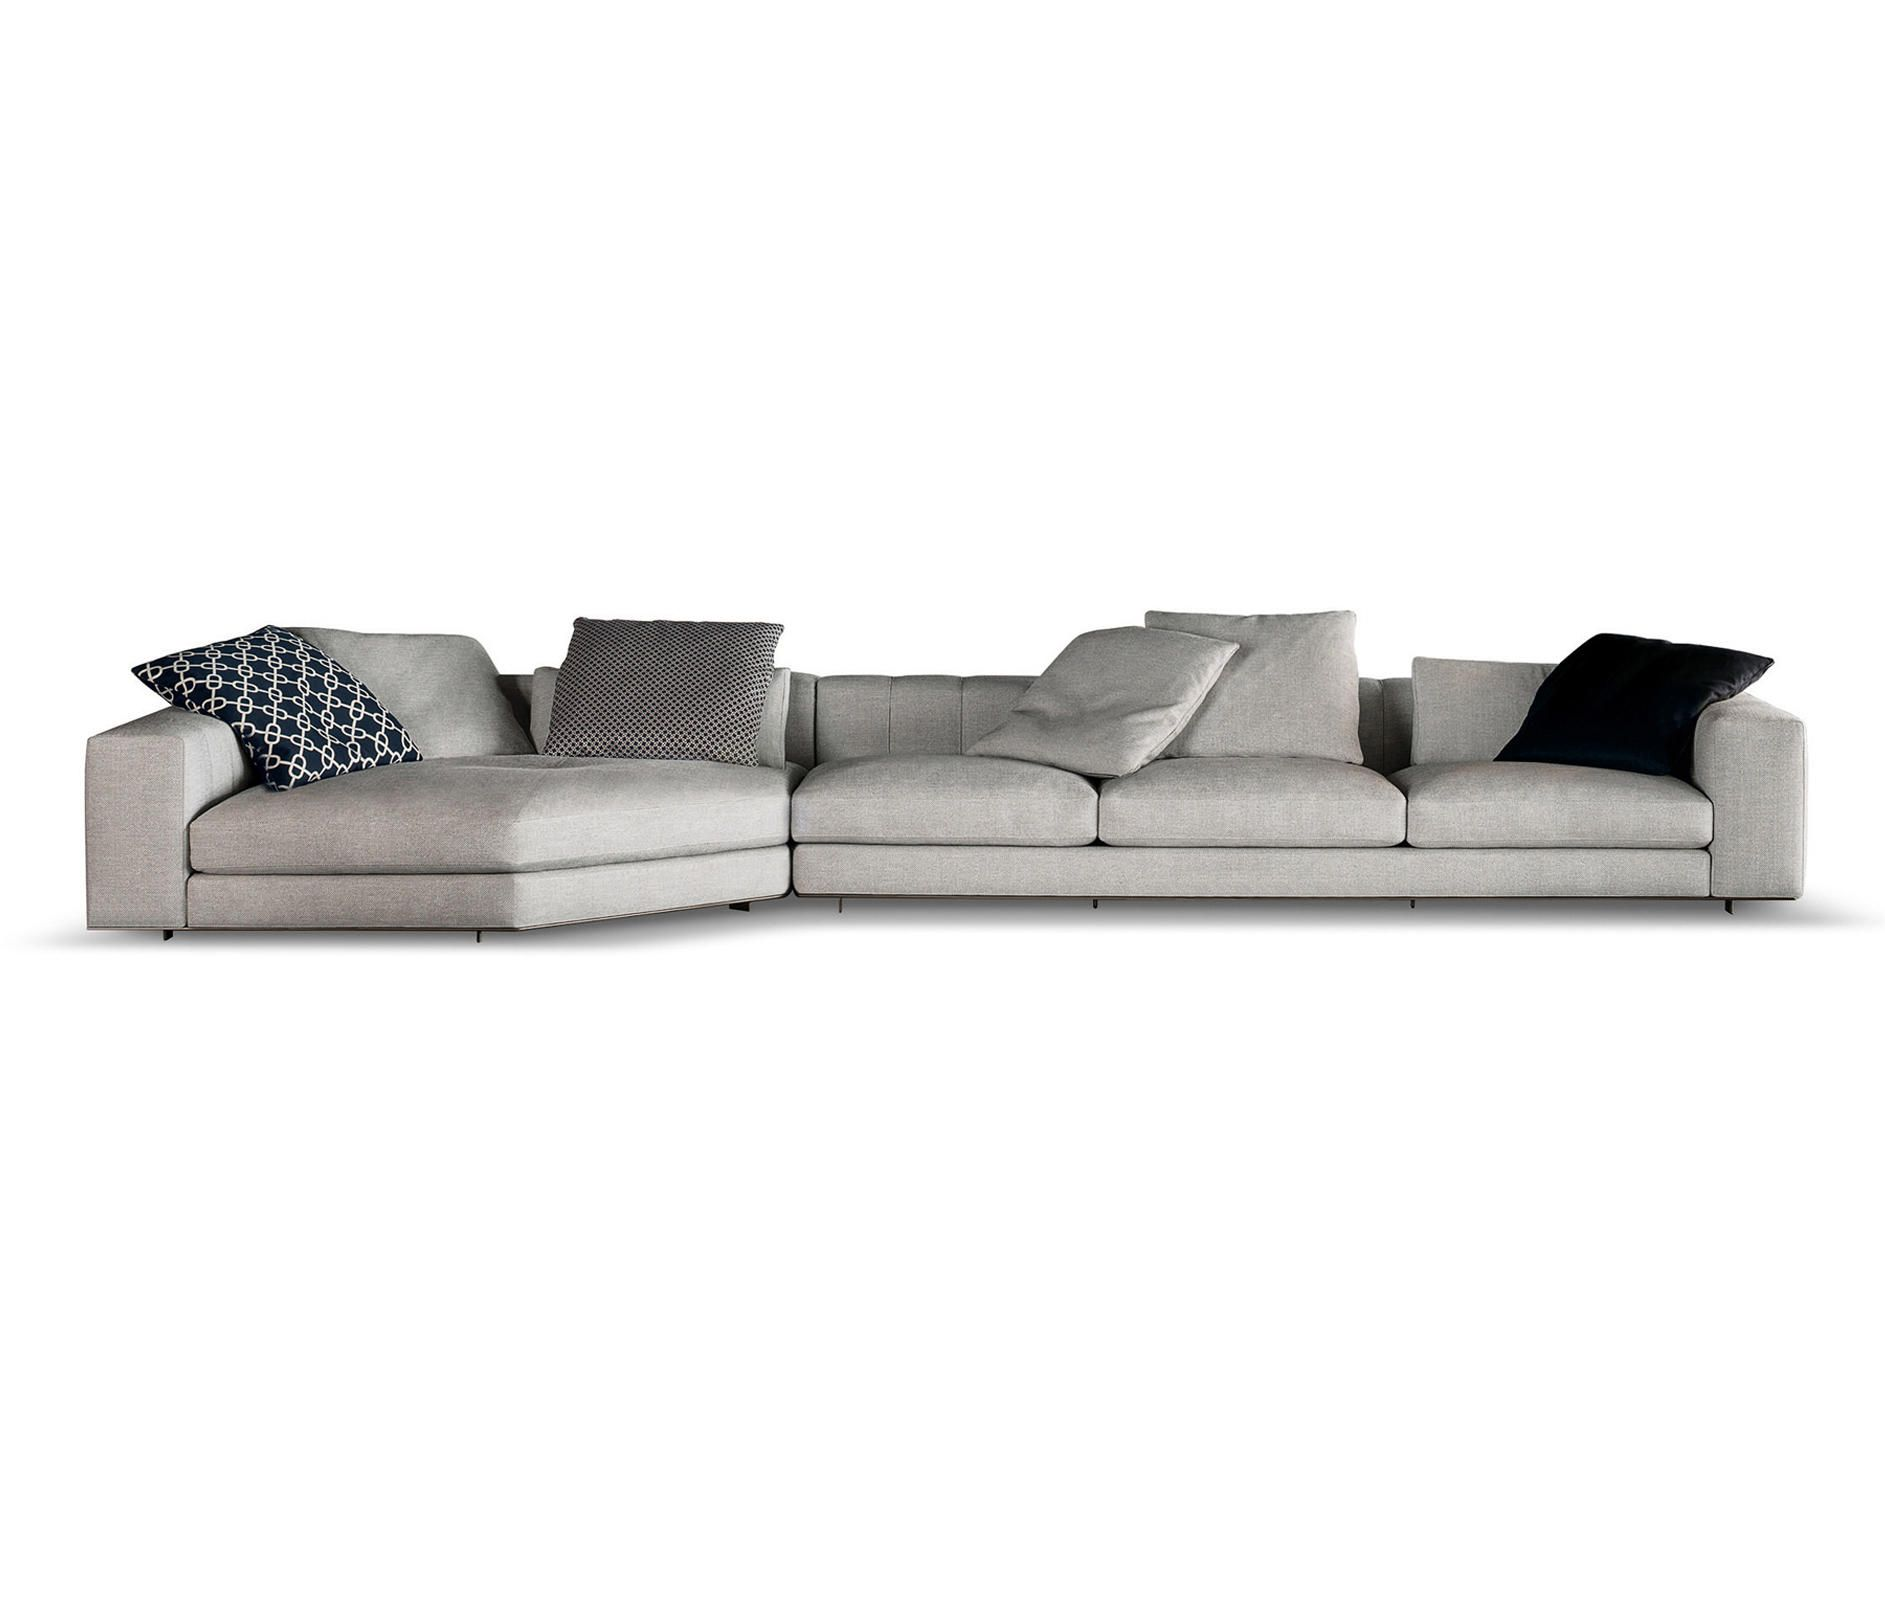 Freeman Duvet Sofa By Minotti Modular Seating Systems Living